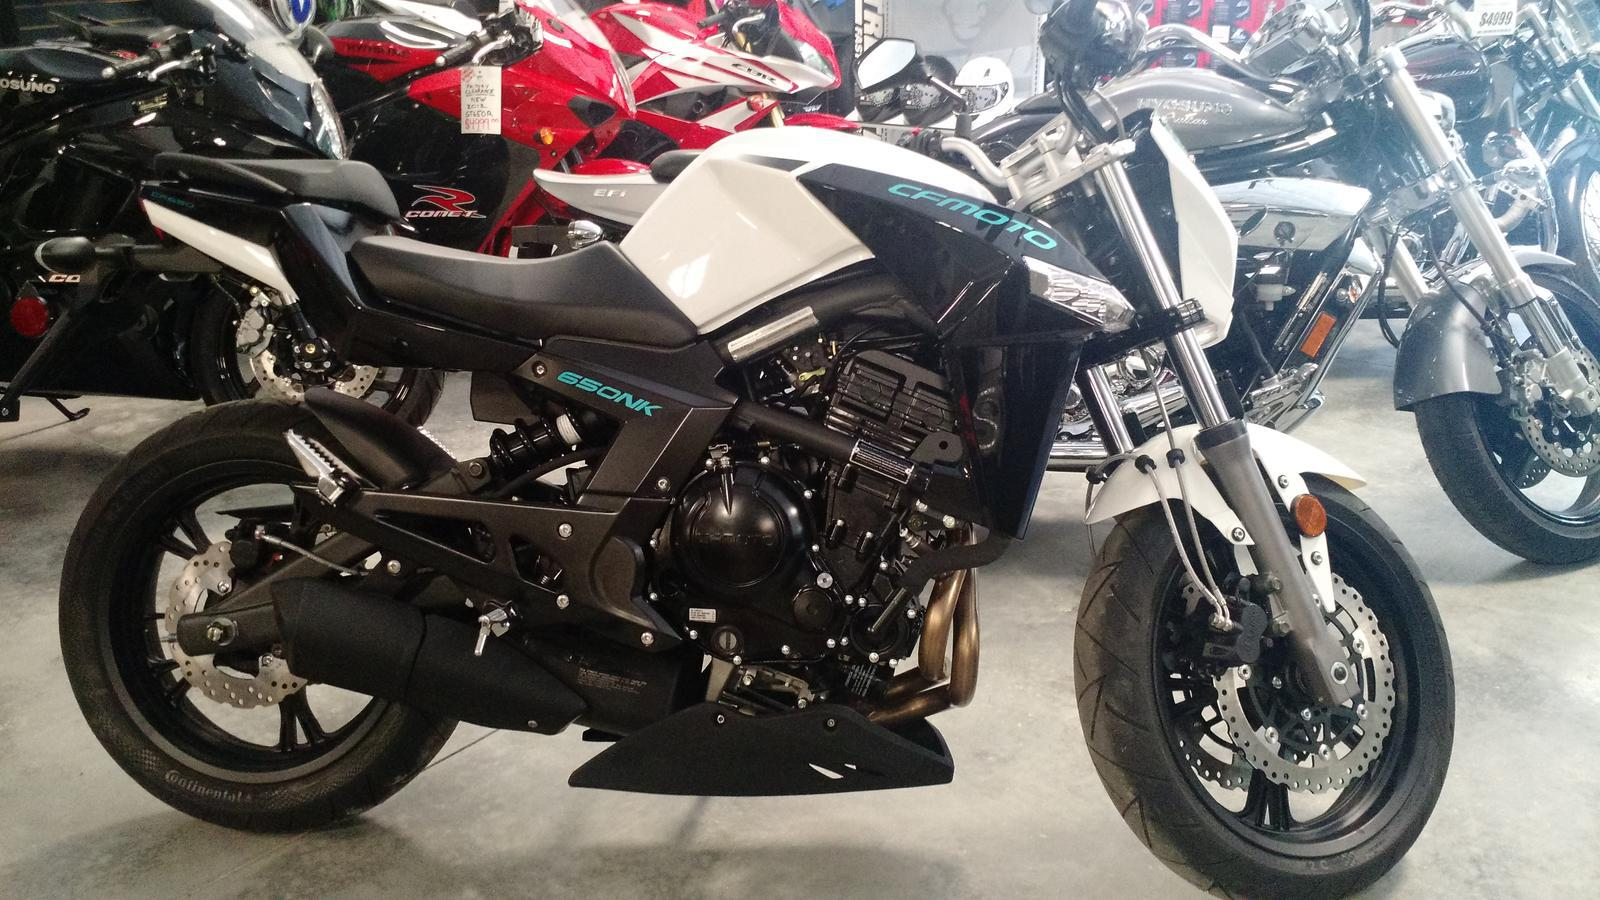 2015 CFMOTO 650NK for sale in Washington, NC. Avalanche Motorsports ...